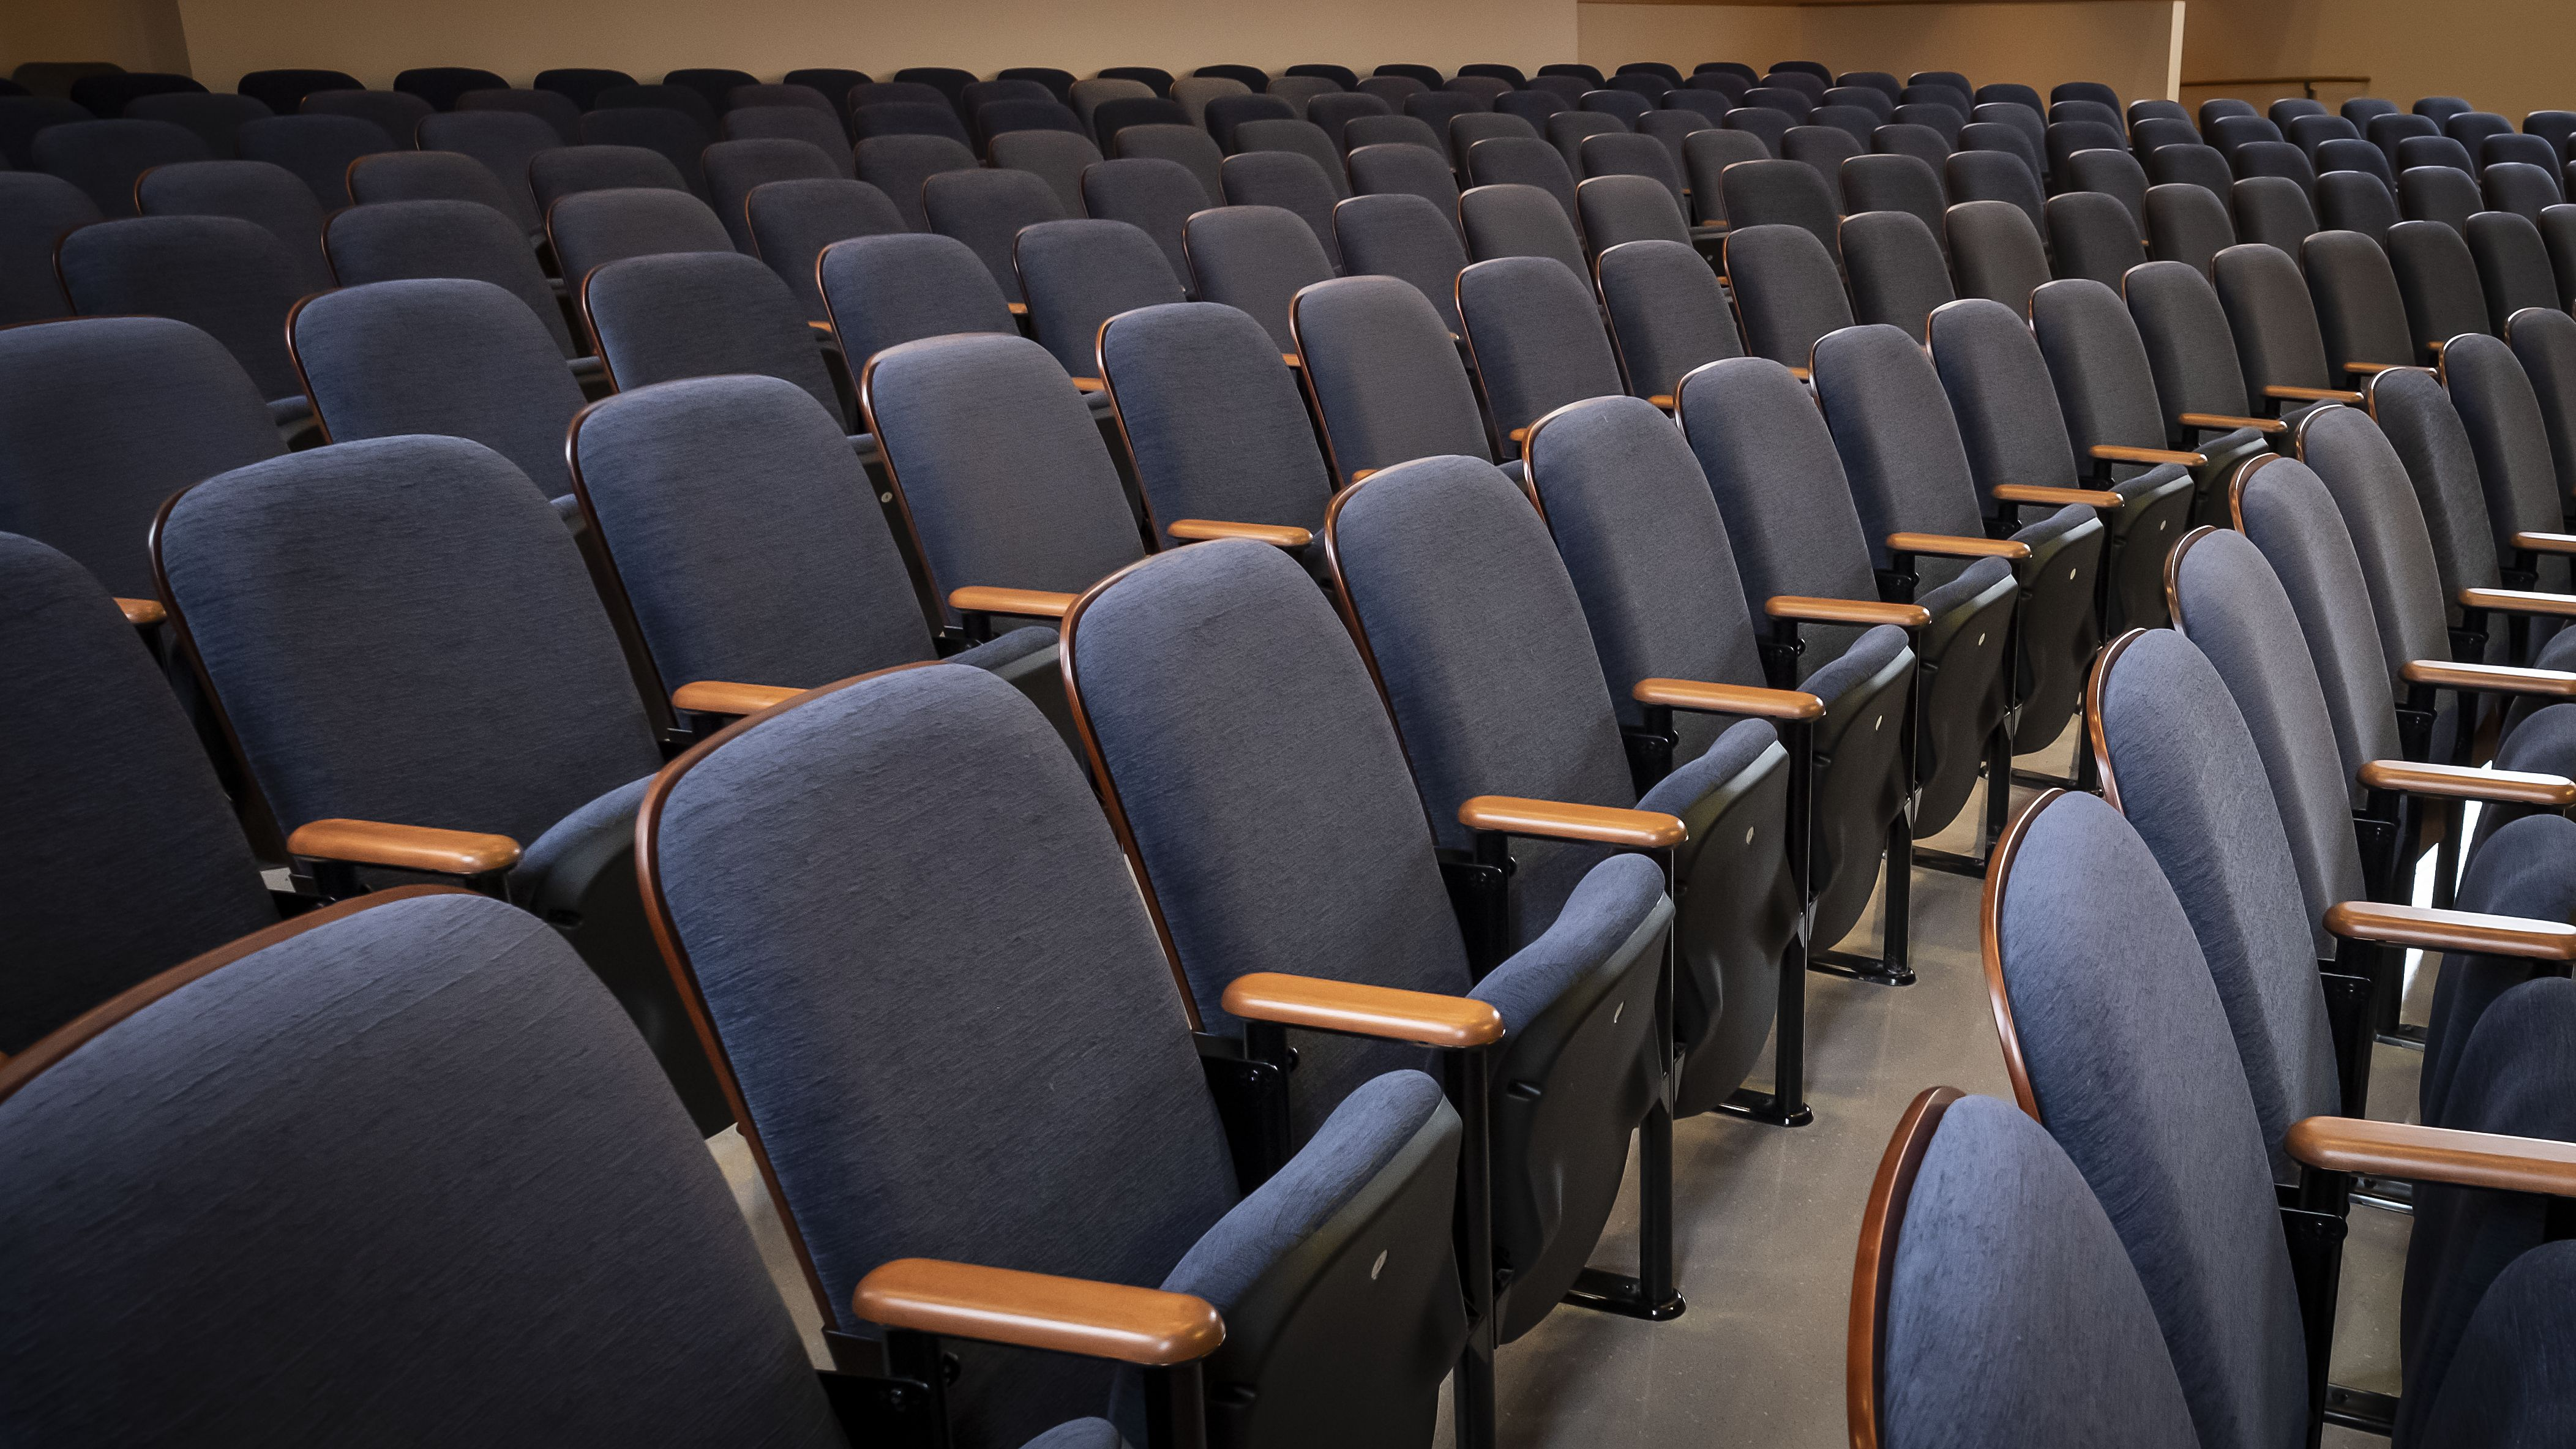 Rows of blue upholstered auditorium seats